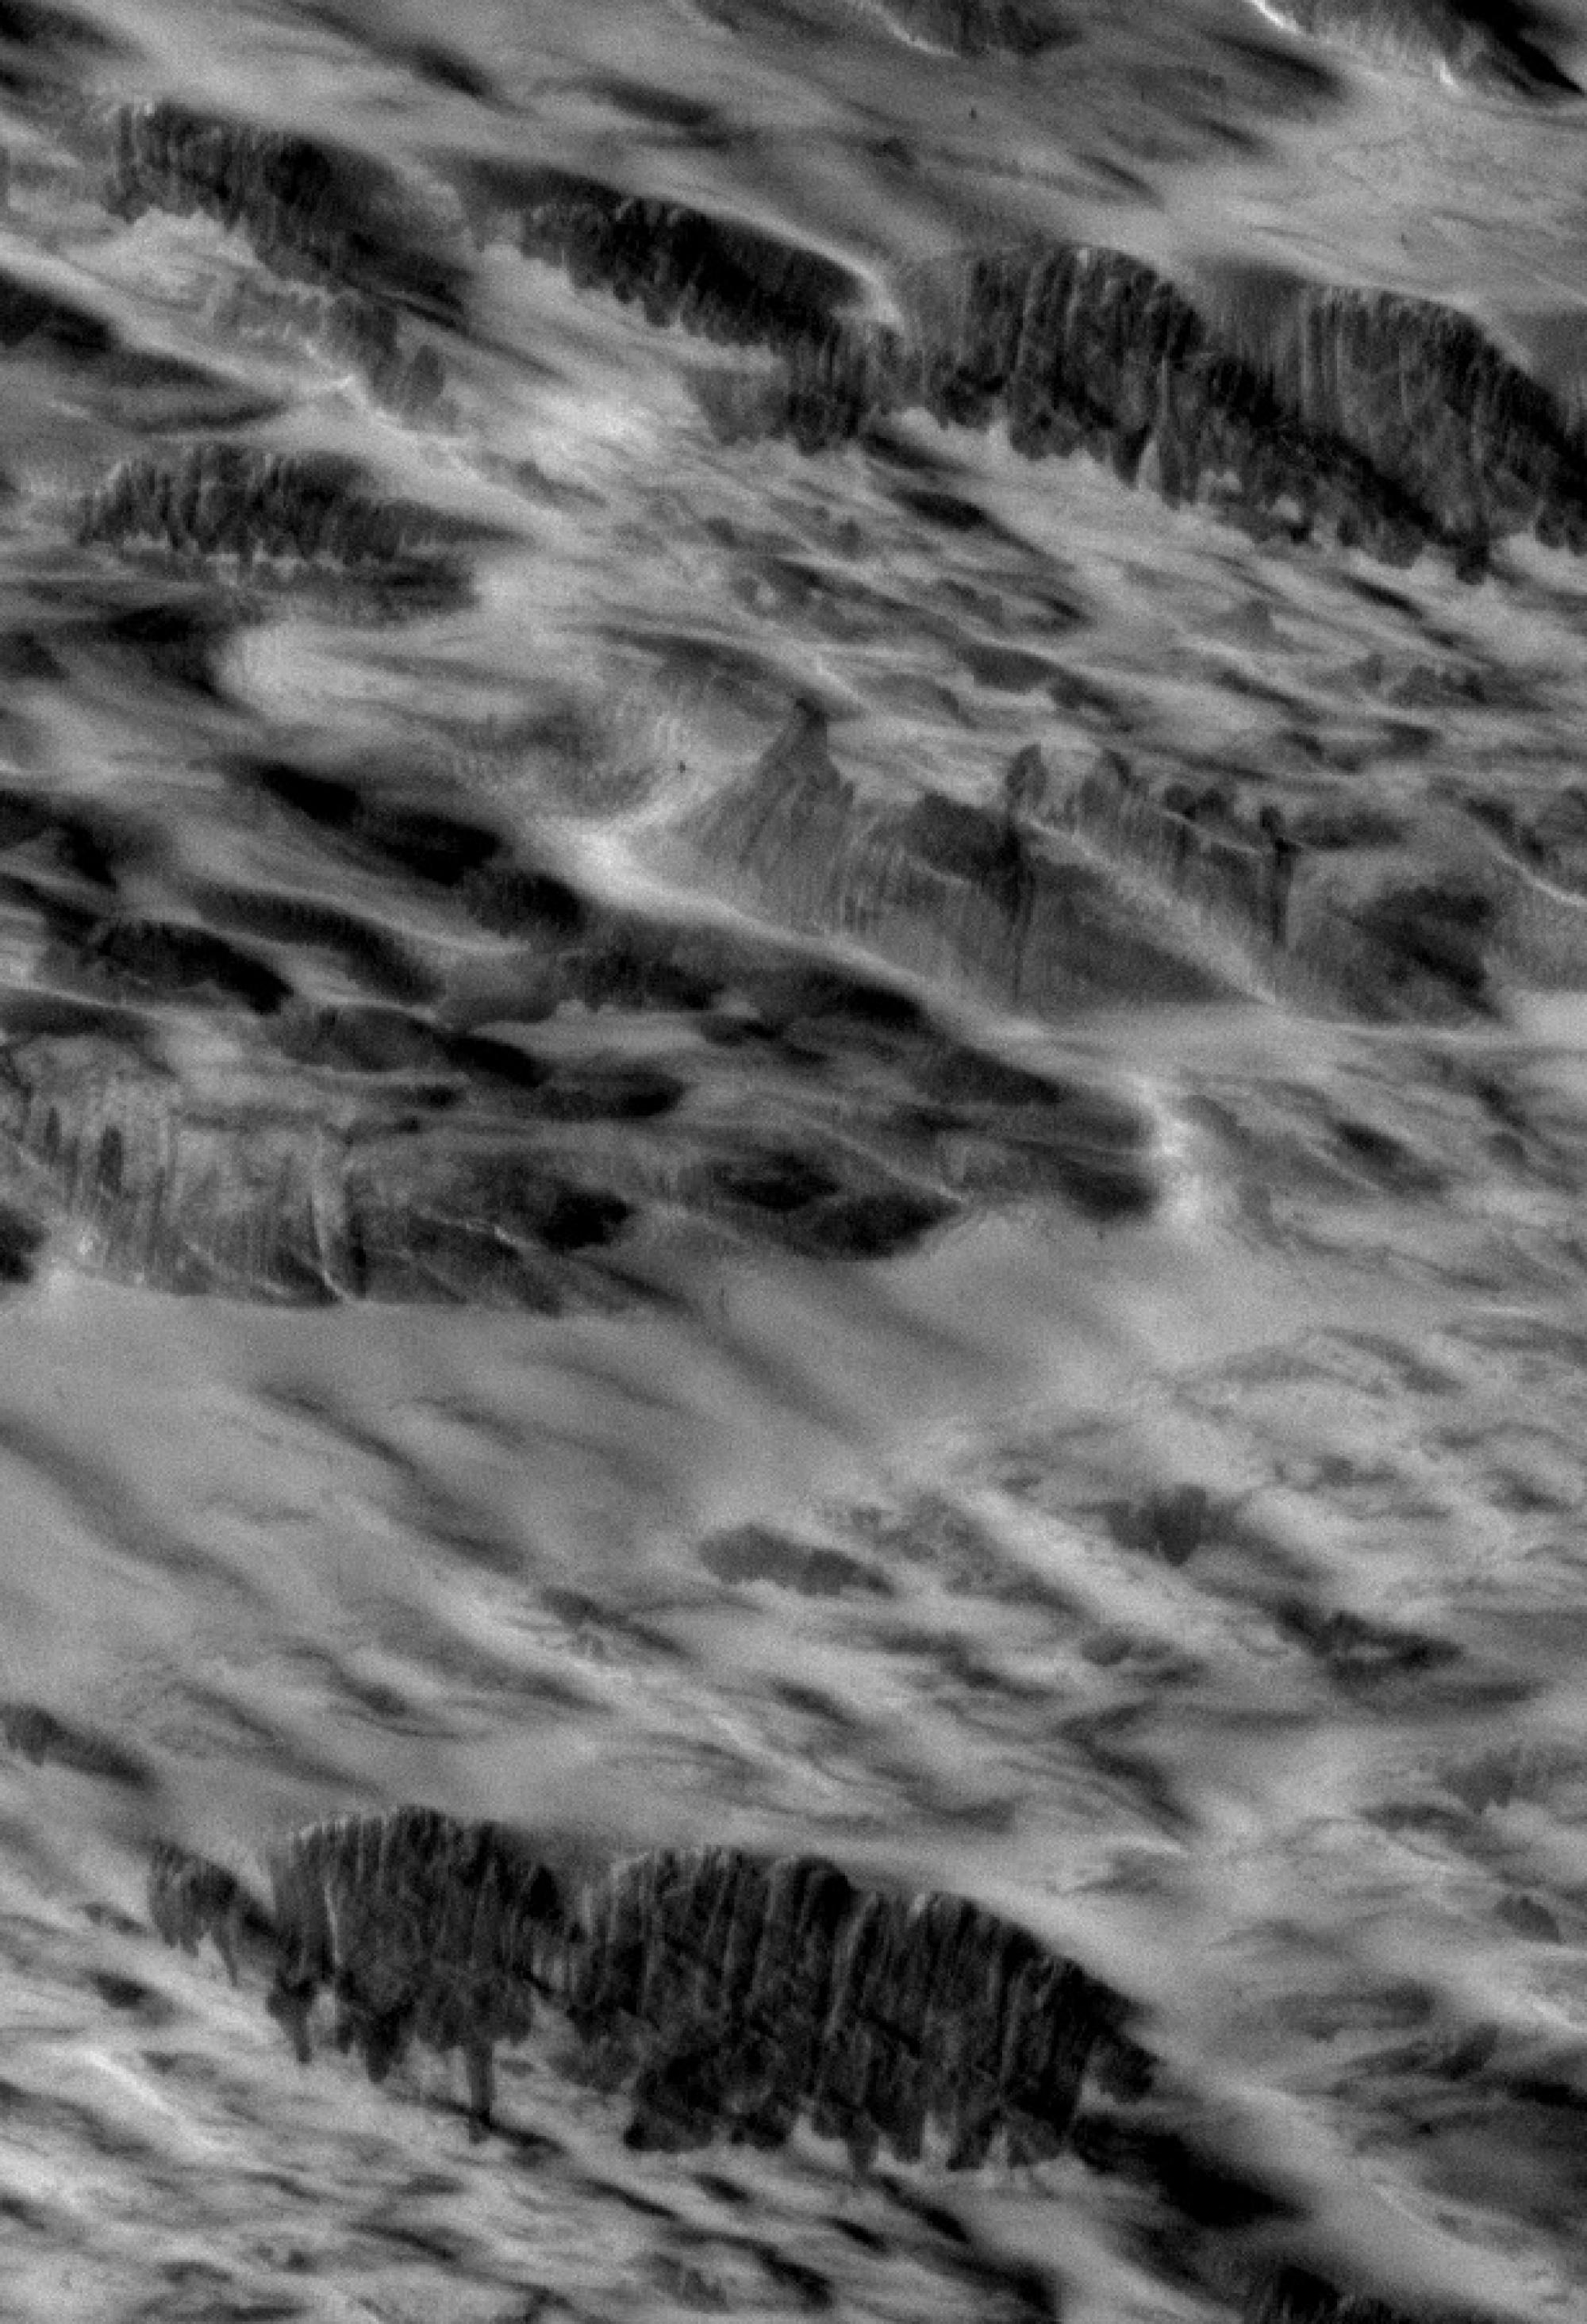 Close-up of Martian terrain with dark streaks interpreted as avalanches blasted by shockwaves from a meteorite impact.